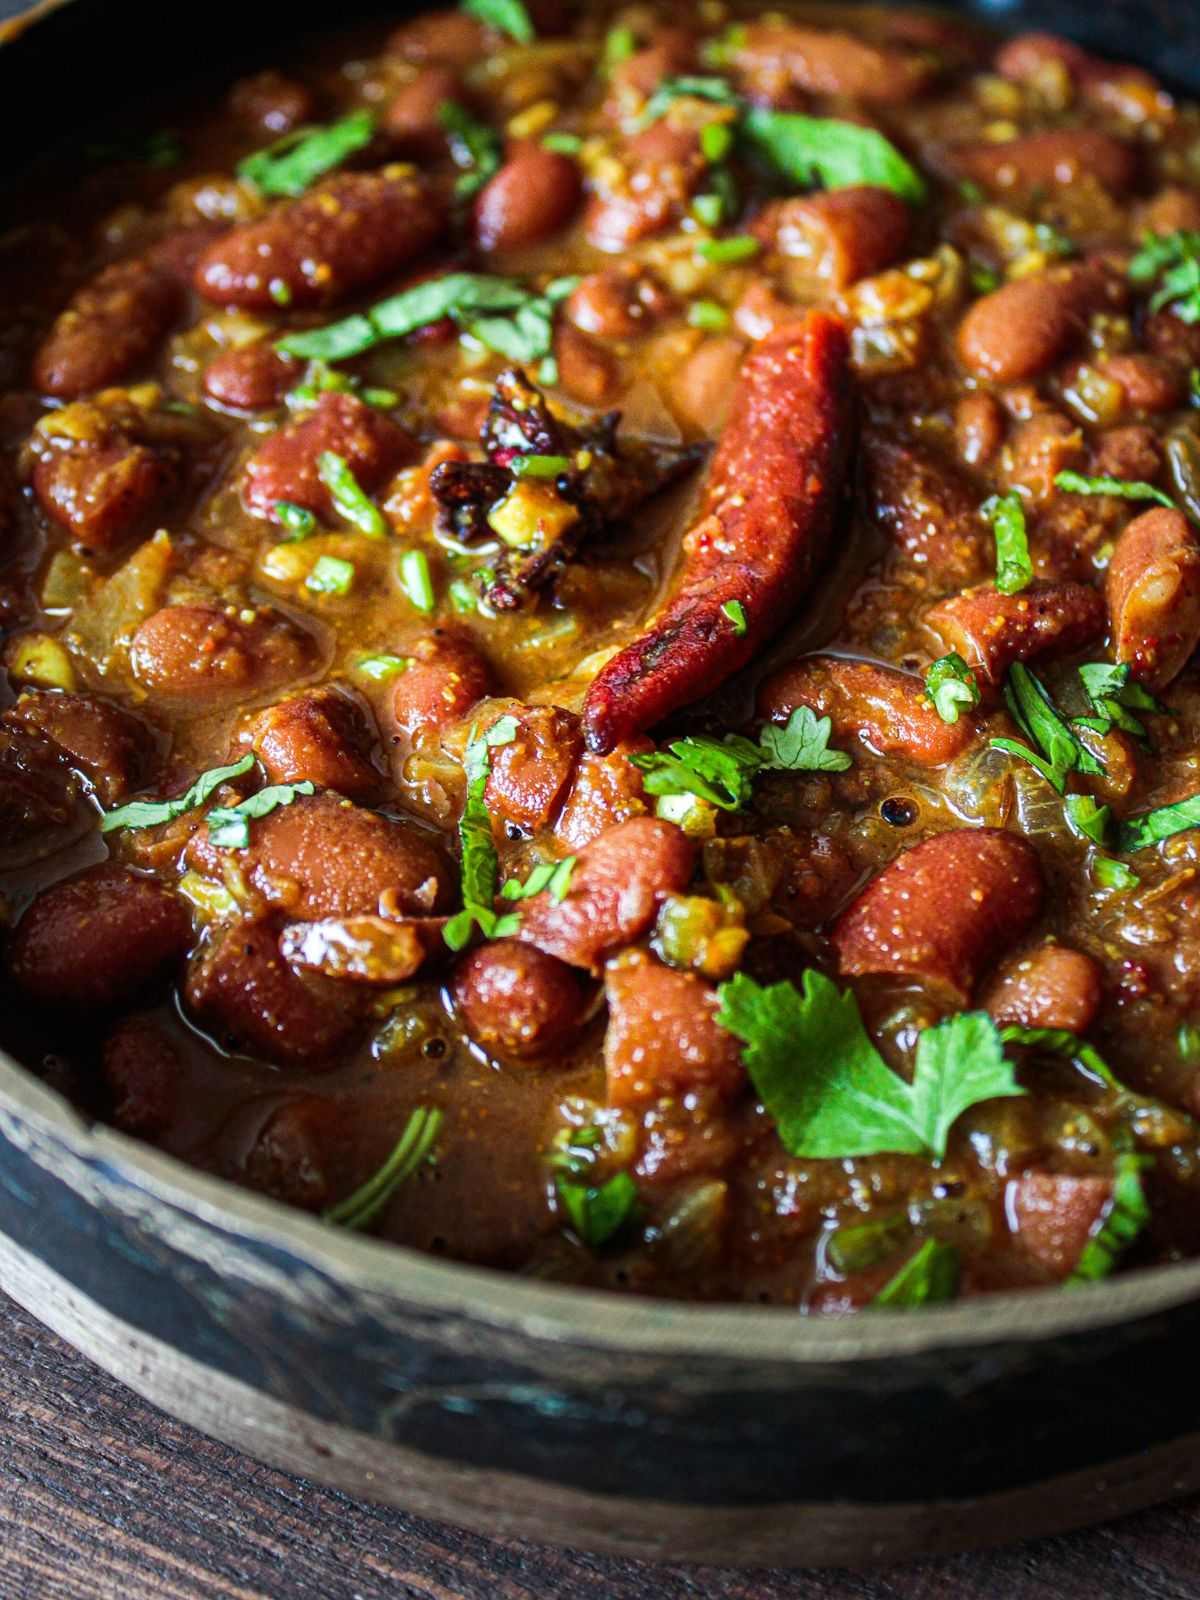 Large bowl of bean curry topped with cilantro on wood table